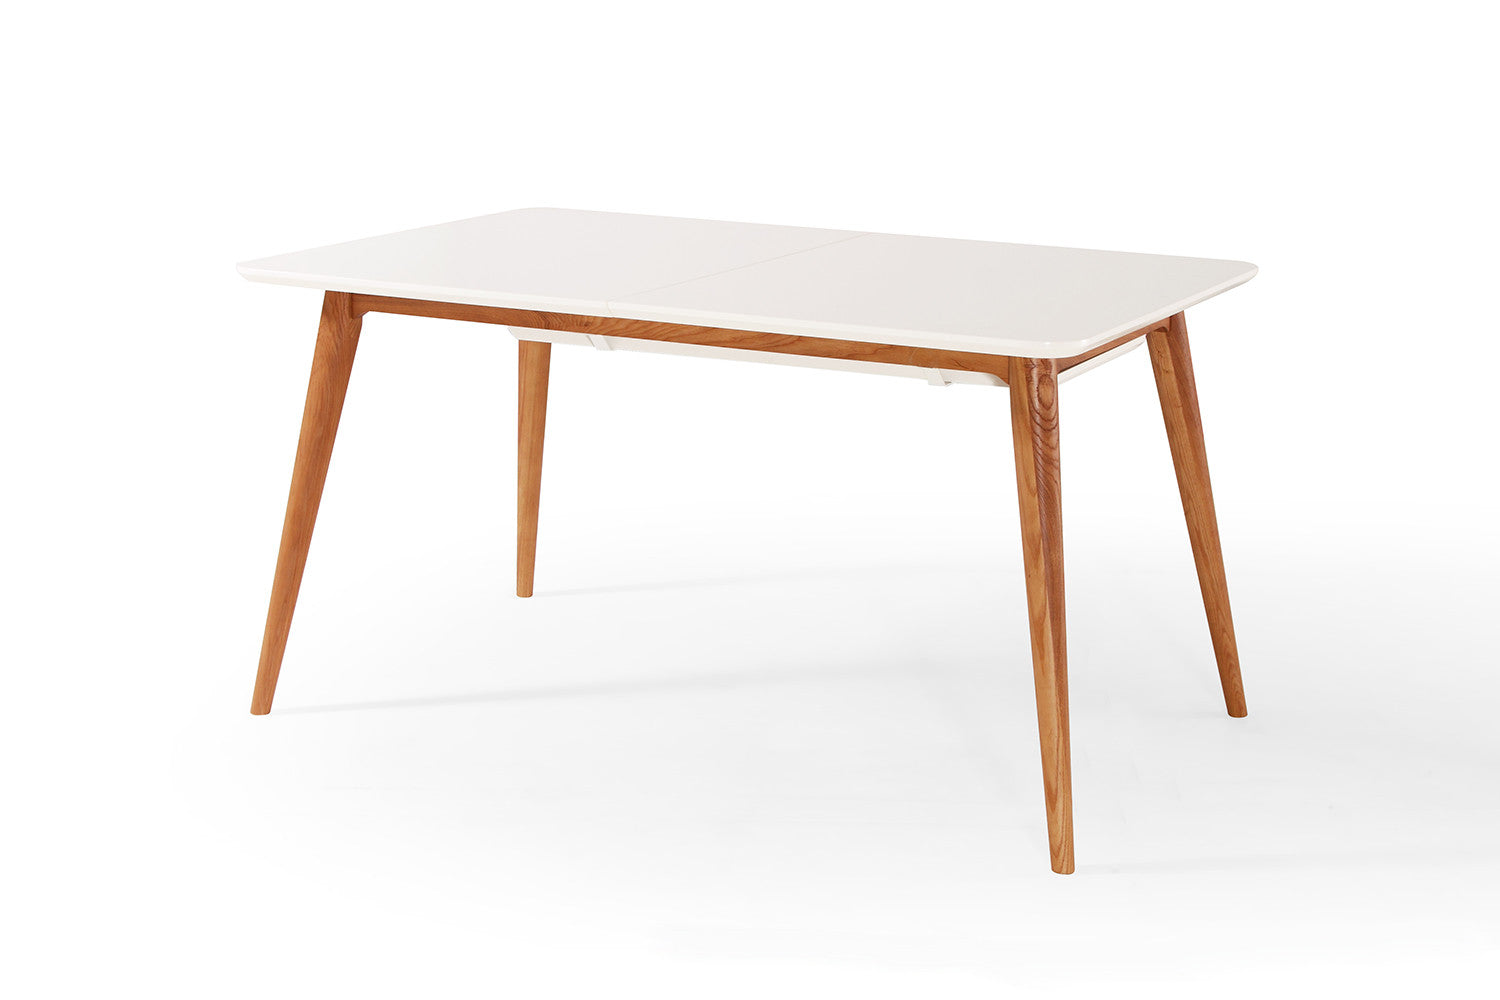 Table de salle manger extensible scandinave wyna dewarens for Table sejour extensible design